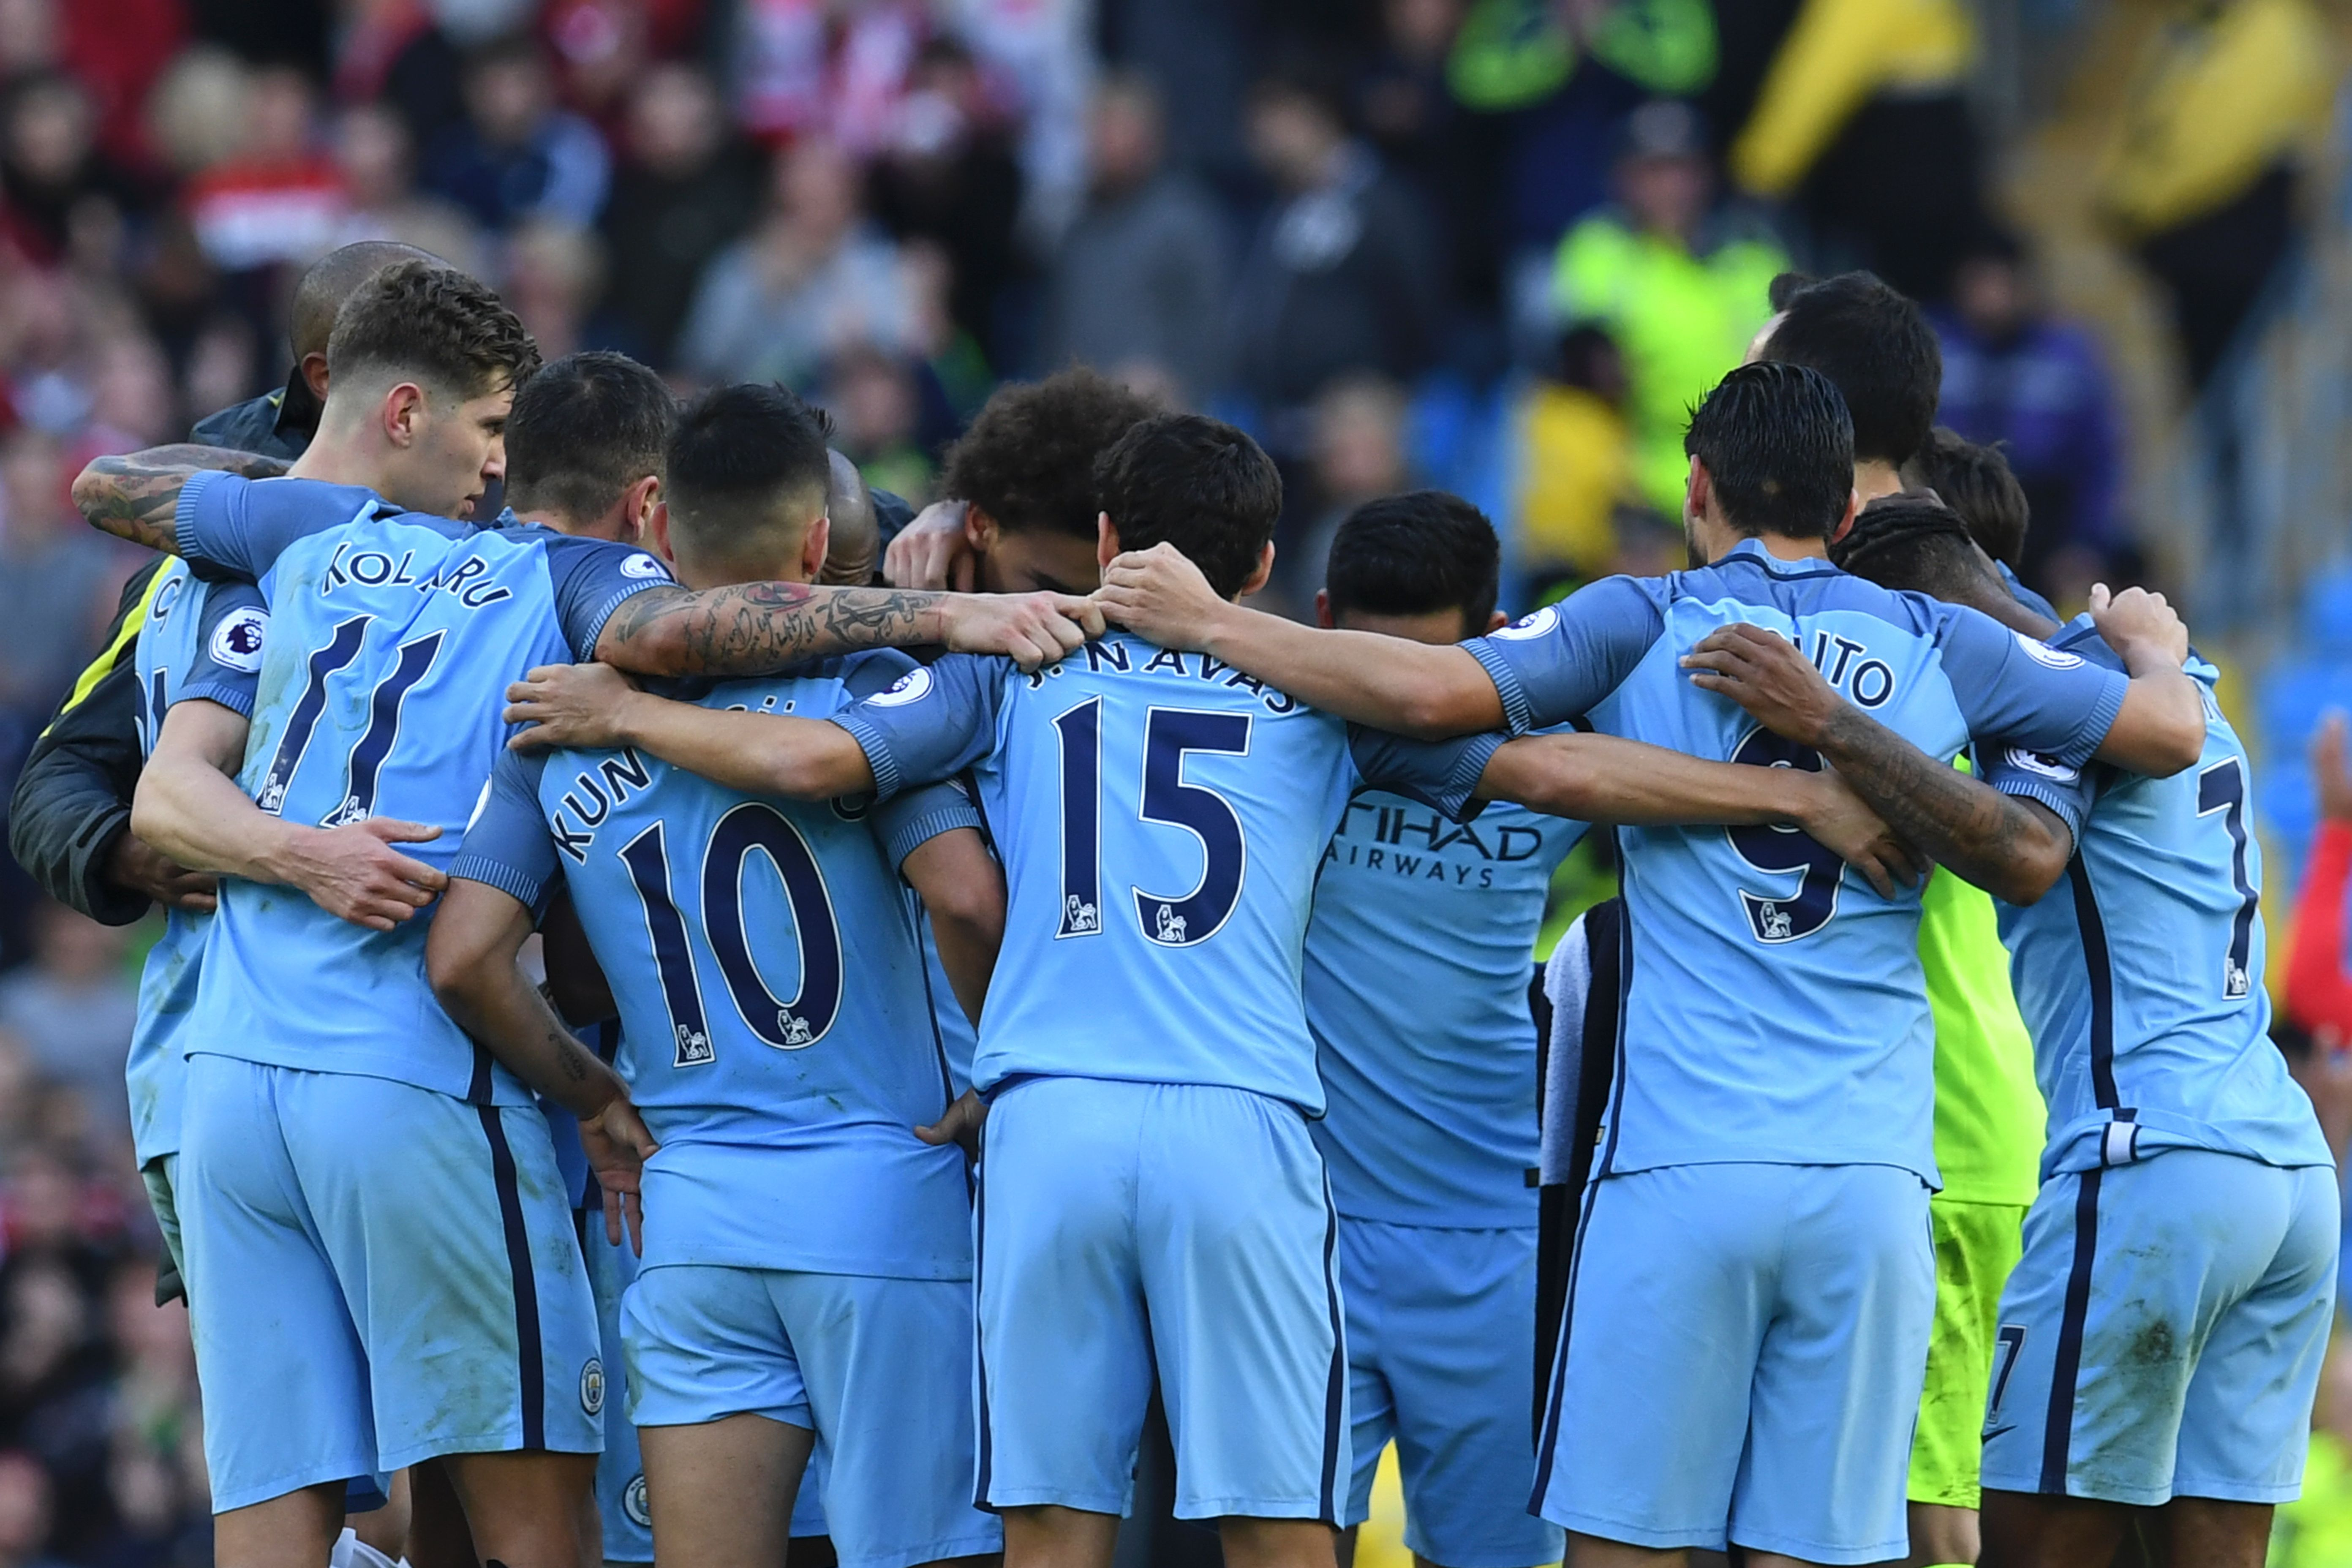 Manchester City players form a group huddle on the pitch after the English Premier League football match between Manchester City and Southampton at the Etihad Stadium in Manchester, north west England, on October 23, 2016. The game finished 1-1. / AFP / Paul ELLIS / RESTRICTED TO EDITORIAL USE. No use with unauthorized audio, video, data, fixture lists, club/league logos or 'live' services. Online in-match use limited to 75 images, no video emulation. No use in betting, games or single club/league/player publications. / (Photo credit should read PAUL ELLIS/AFP/Getty Images)